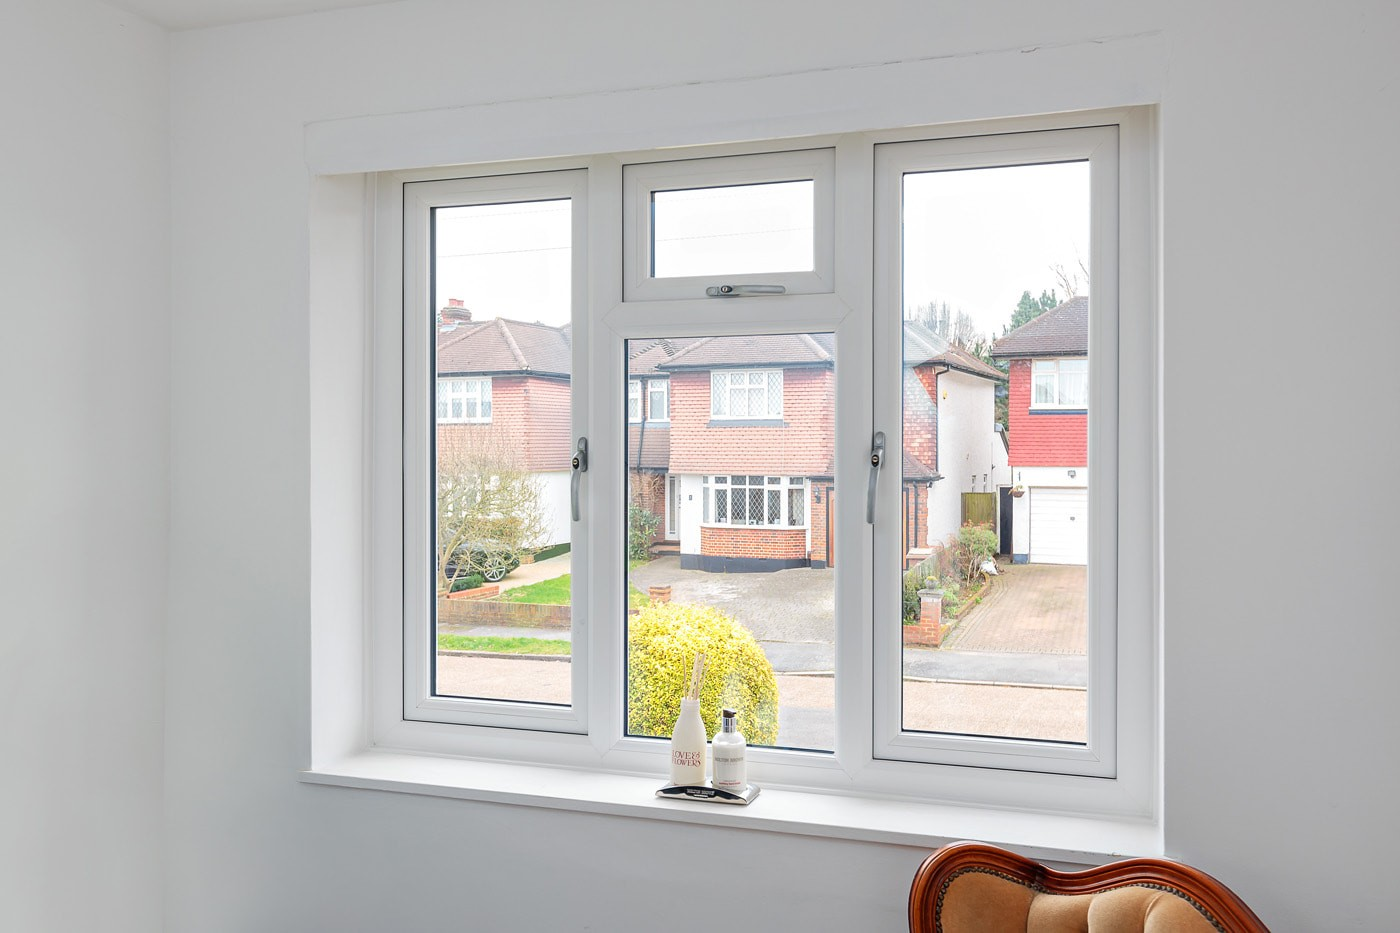 New windows in your New Haw home